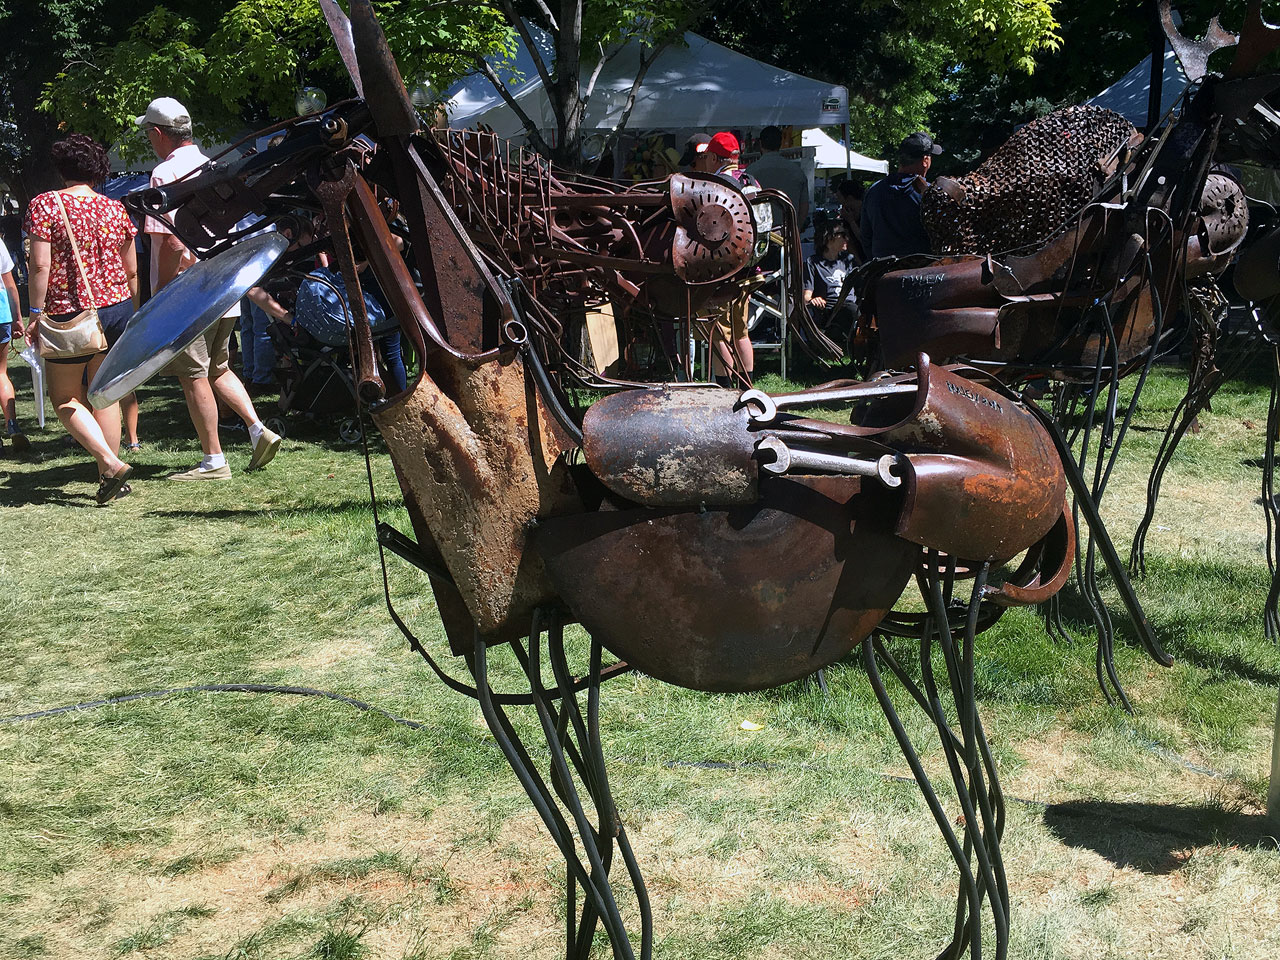 A metal sculpture made of farm tools